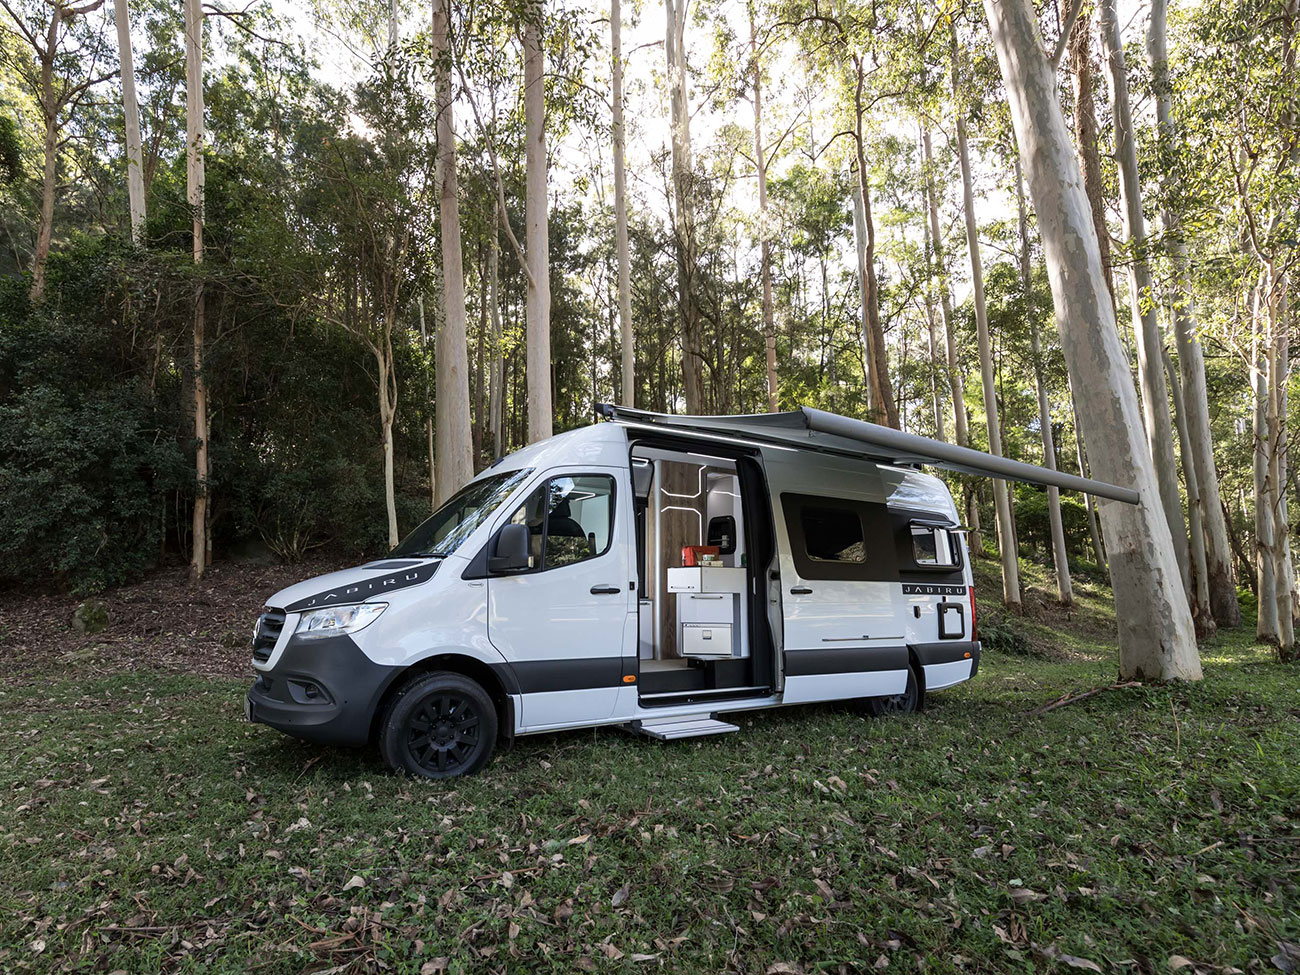 Trakka's latest camper van heads for the Outback with off-grid power and slick versatility